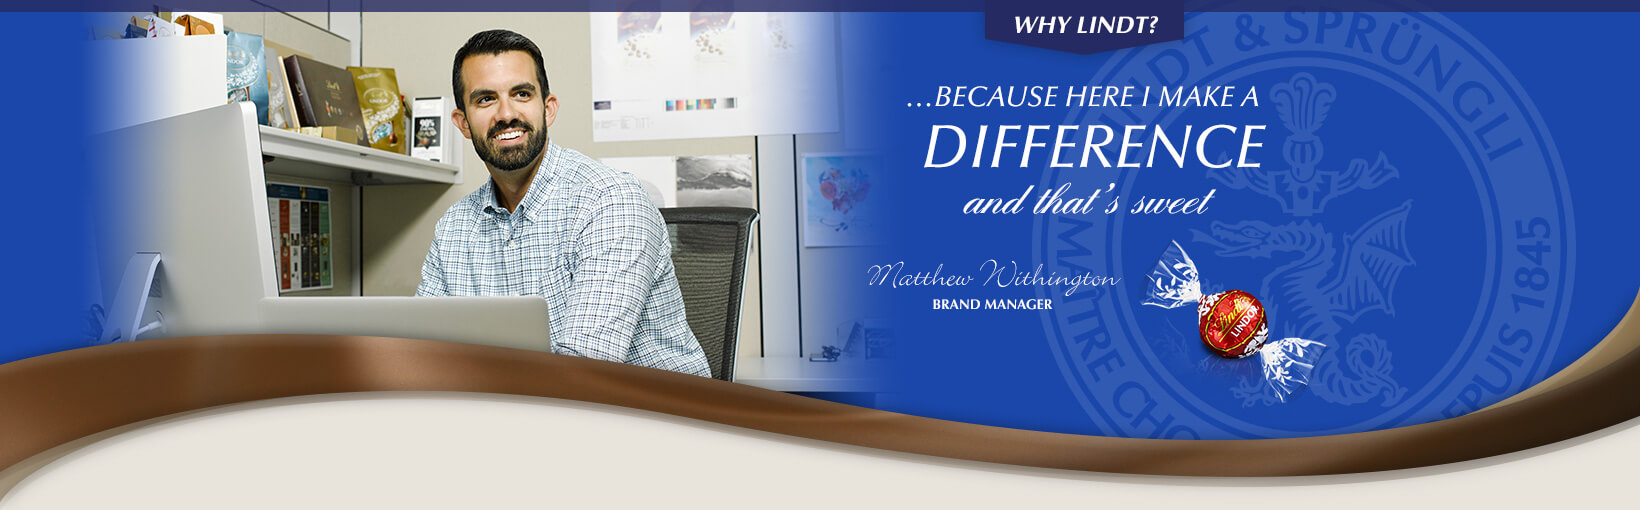 Why Lindt? …Because here I make a difference and that's sweet. Matthew Withington, Branch Manager